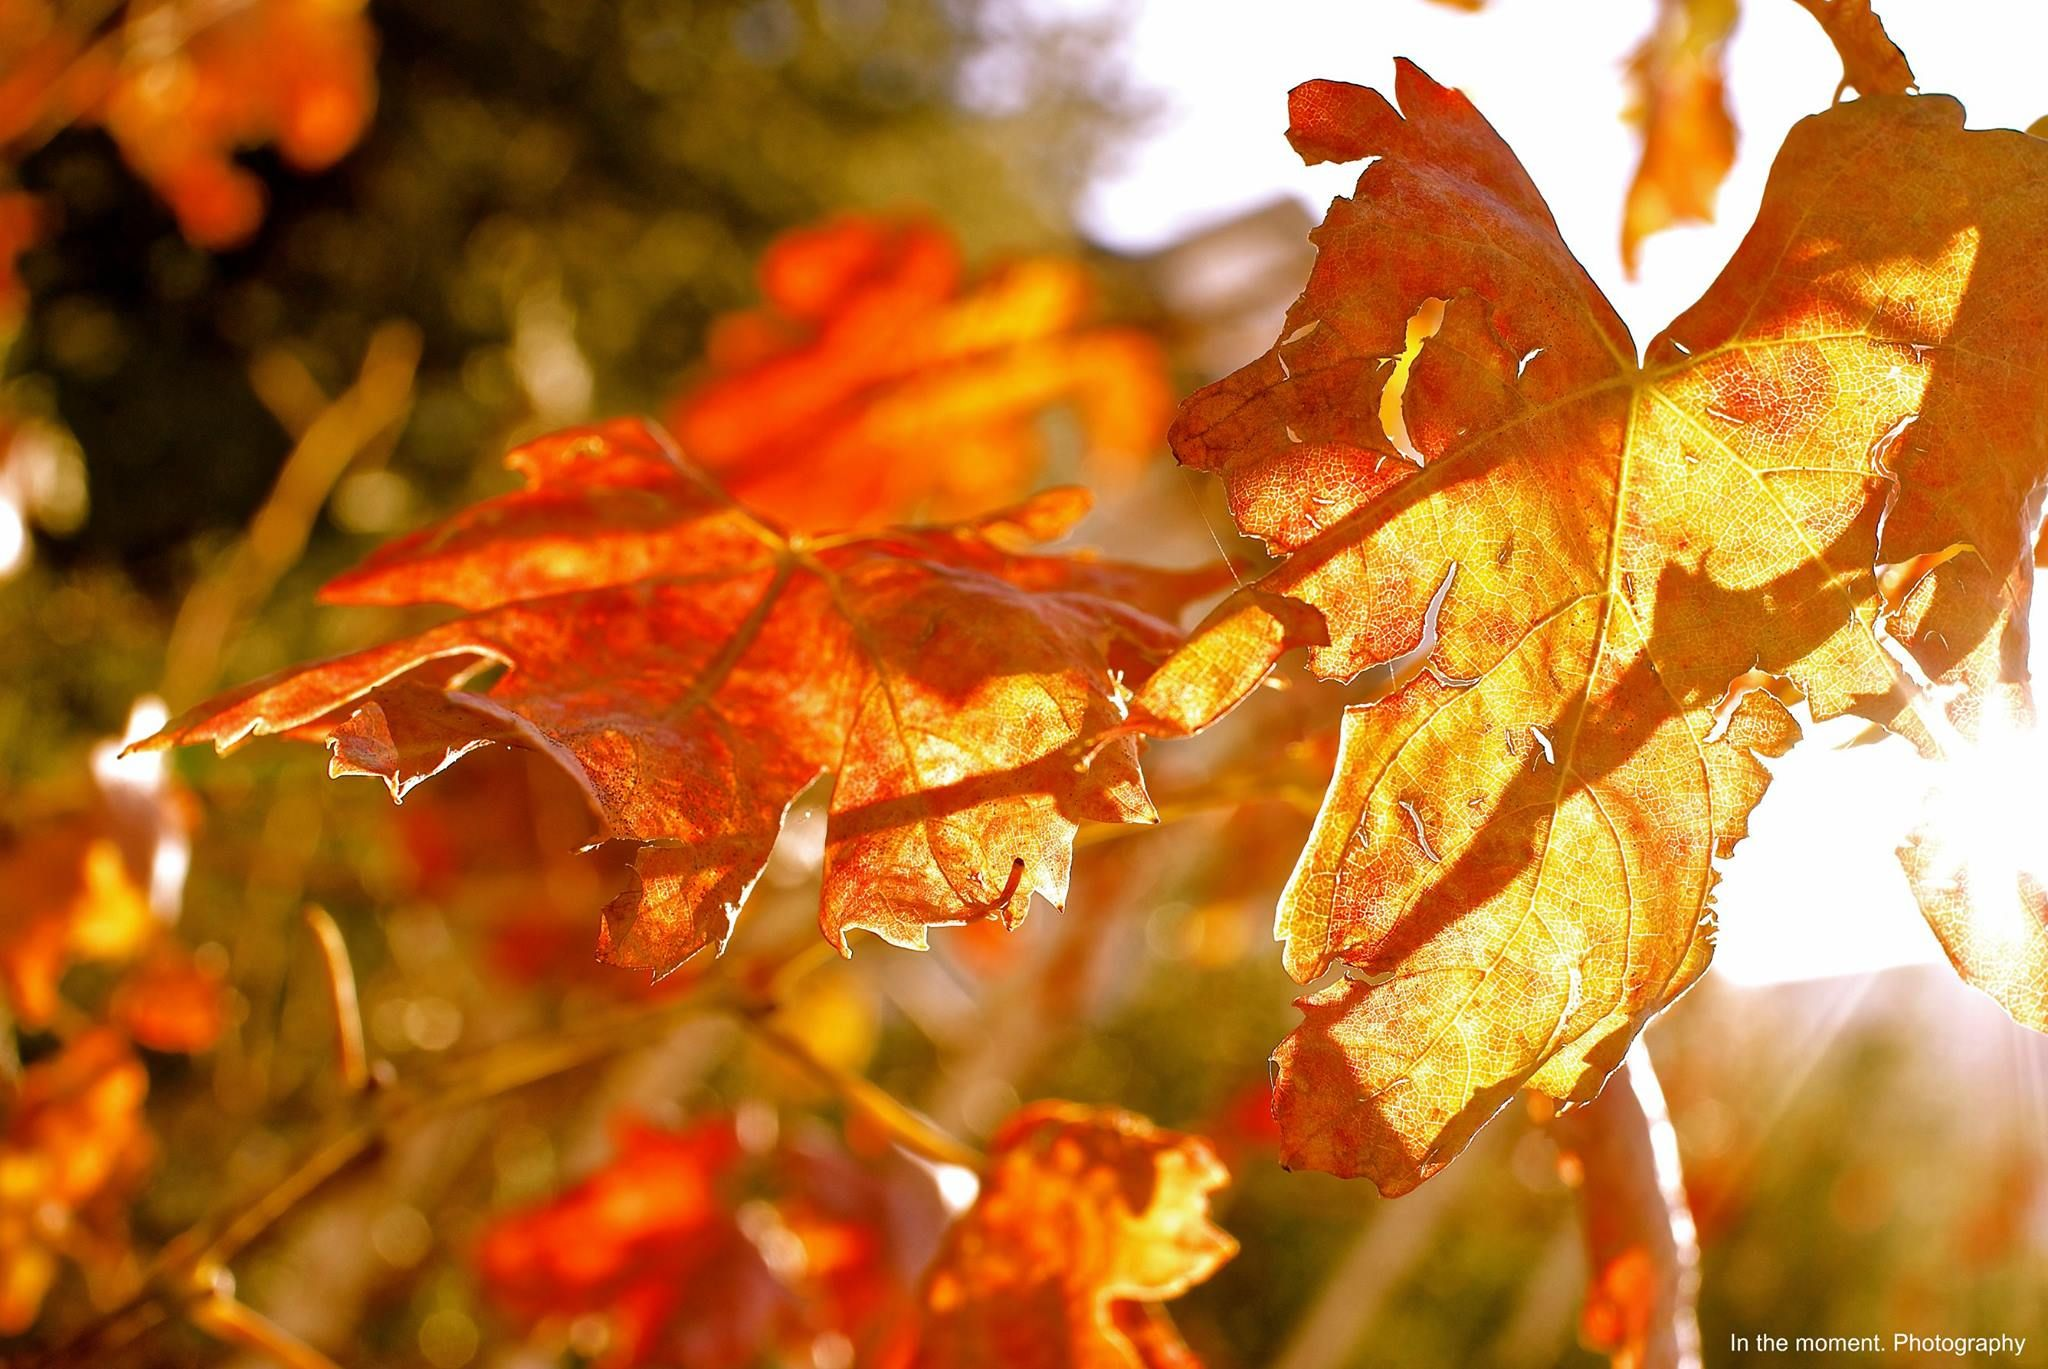 Autumn Leaves by: In the moment. Photography